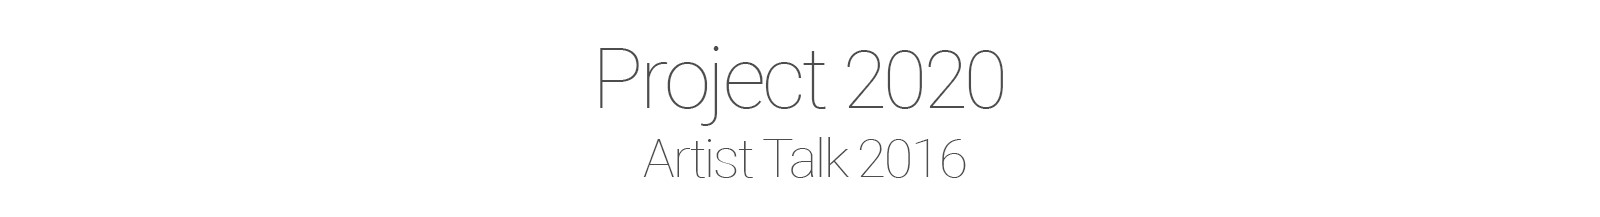 Exhibition-artist talk-00000